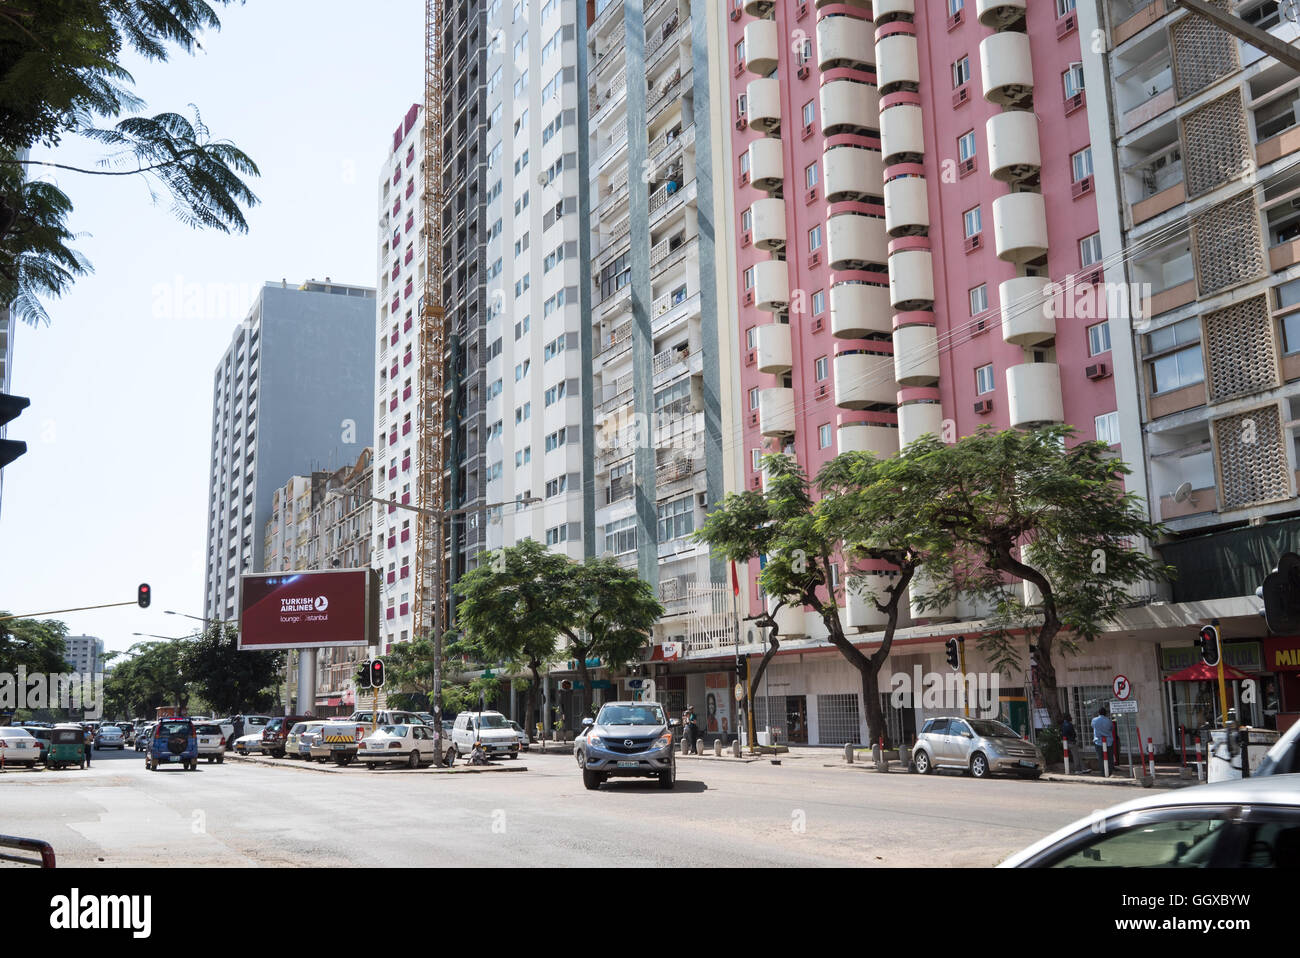 Street life in Maputo, the capital of Mozambique Stock Photo